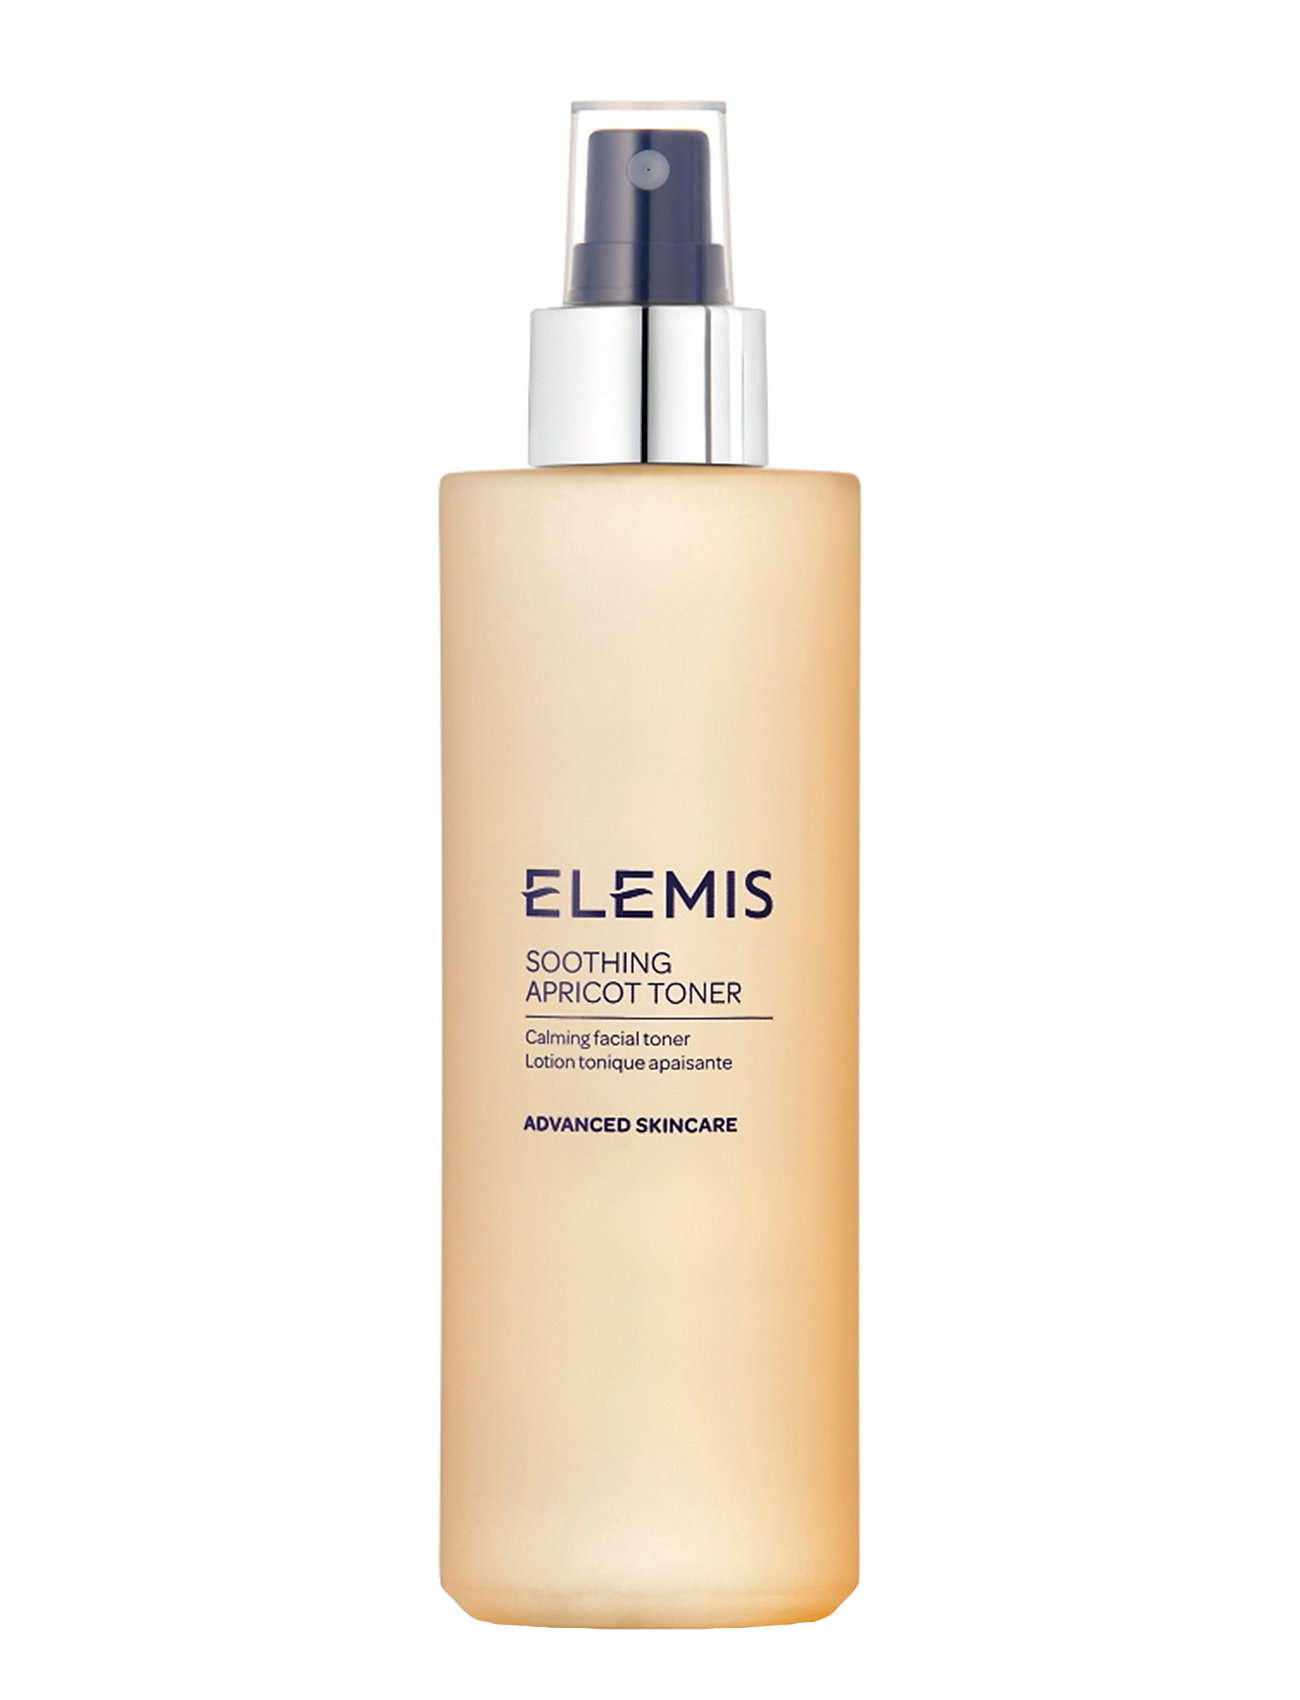 Elemis Soothing Apricot Toner - CLEAR